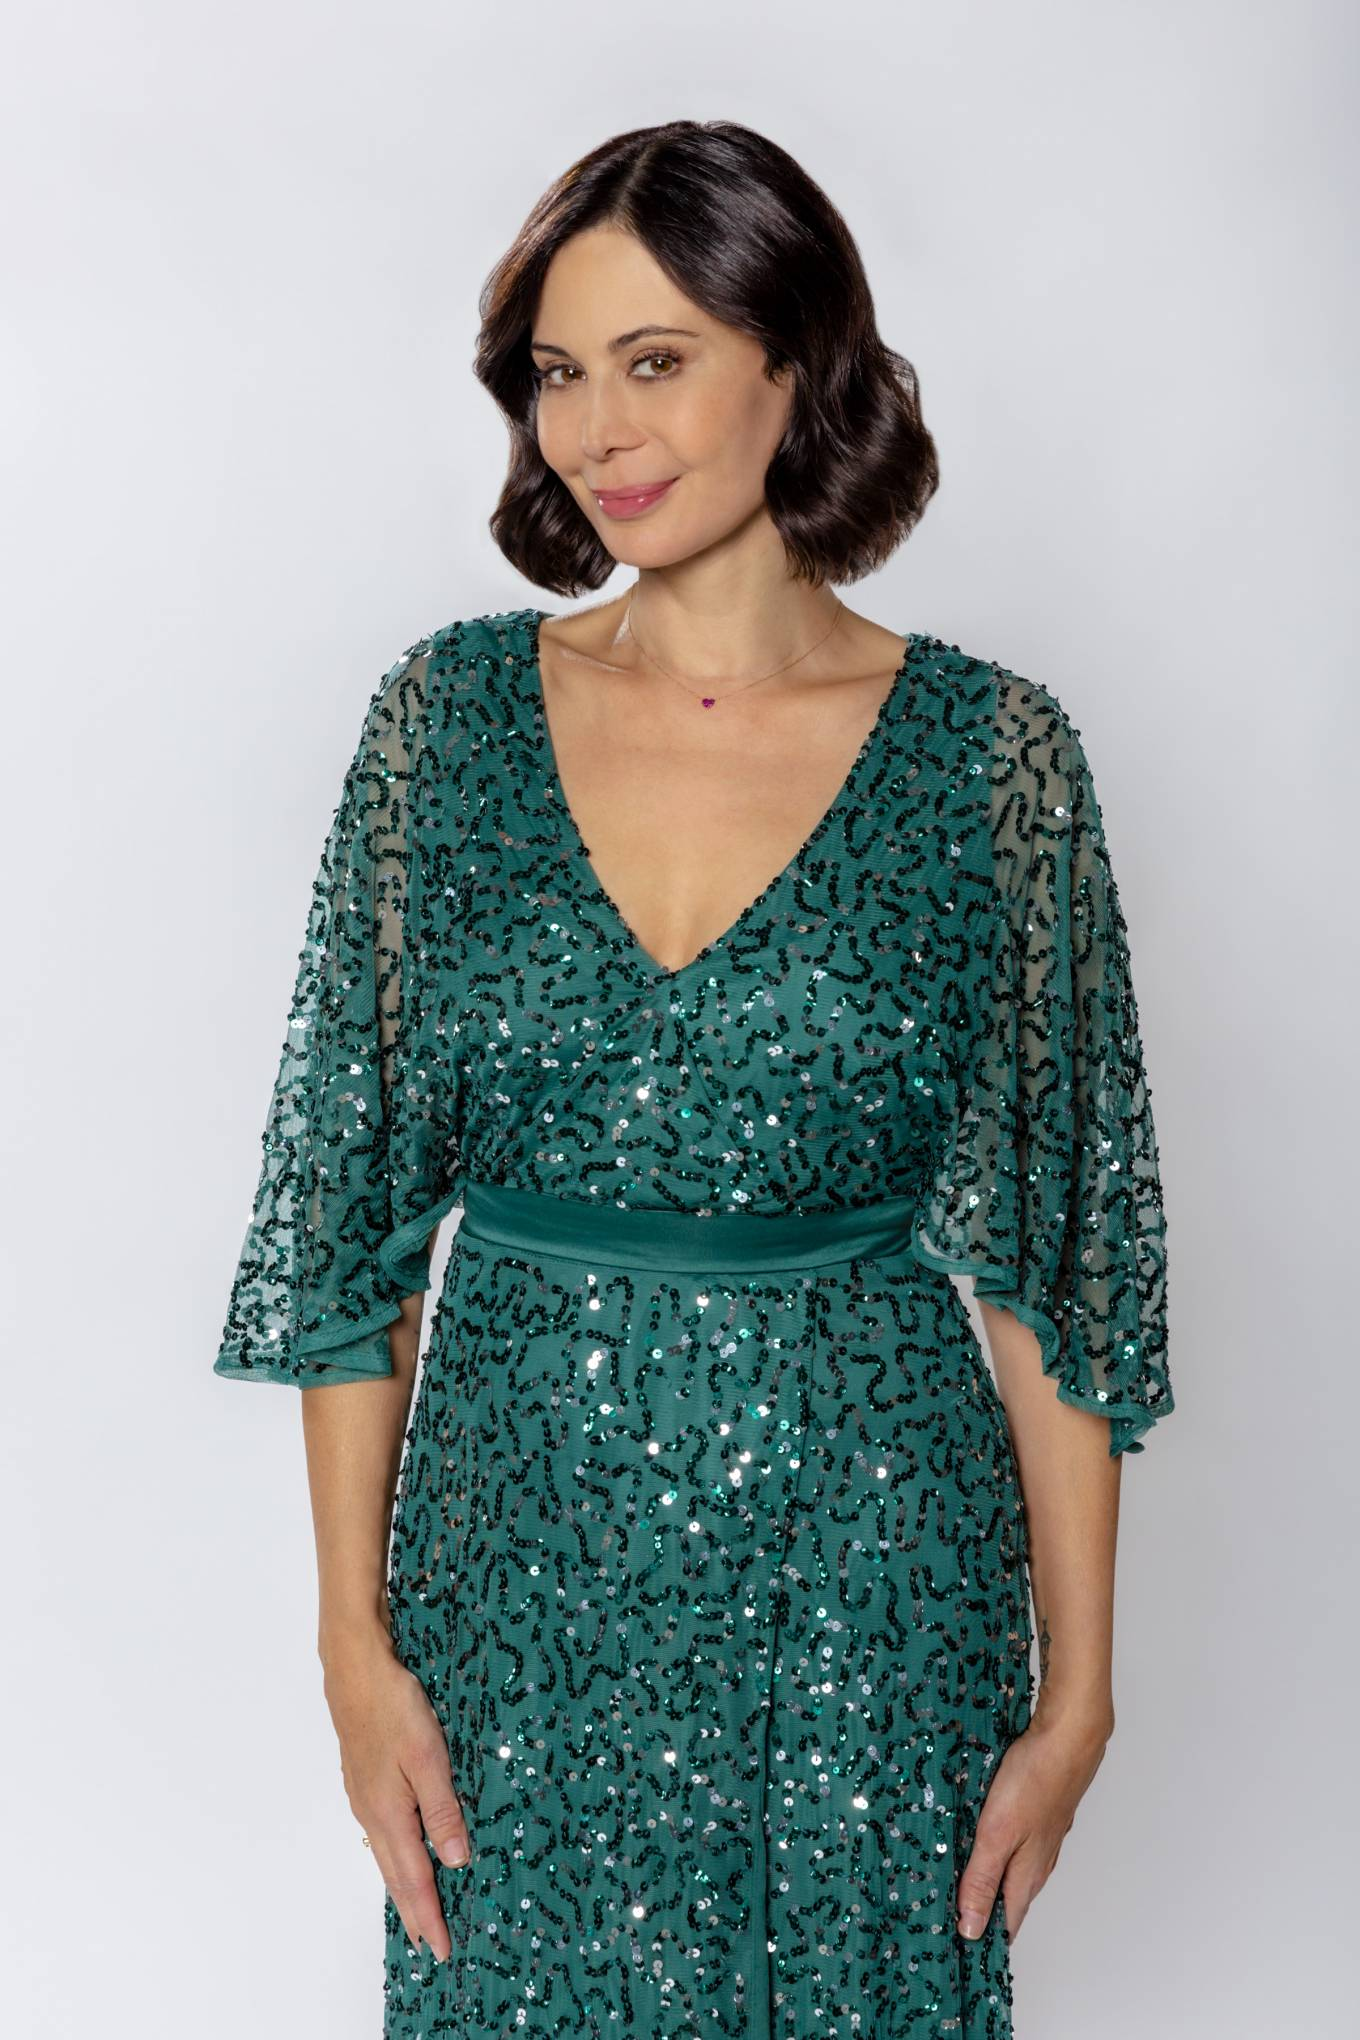 Catherine Bell Meet Me at Christmas 2020 Poster Promo Stills 12